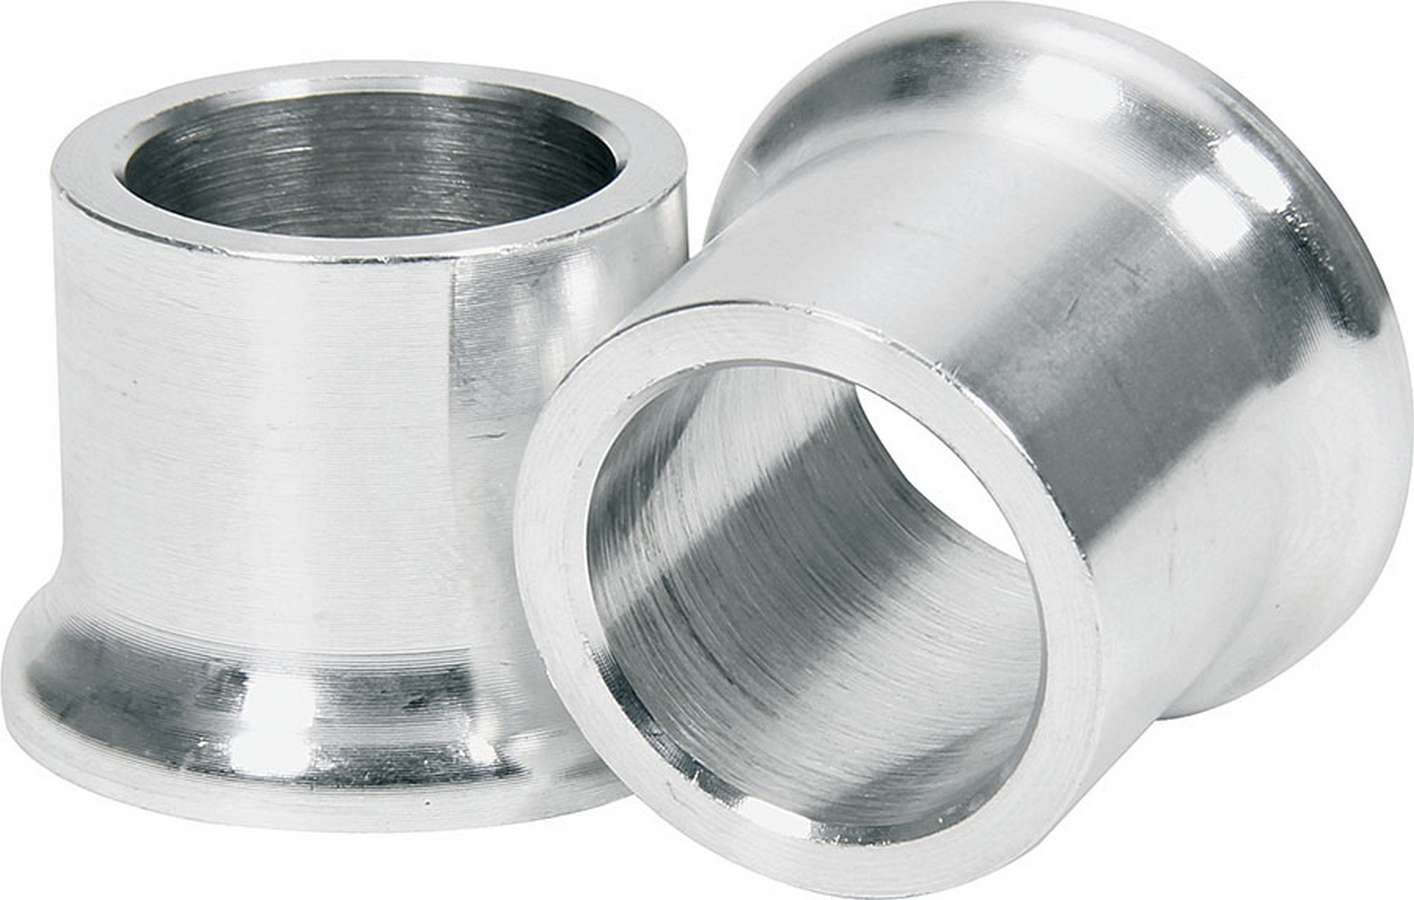 Allstar Tapered Spacers, Aluminum 5/8 I.D., 3/4 Long